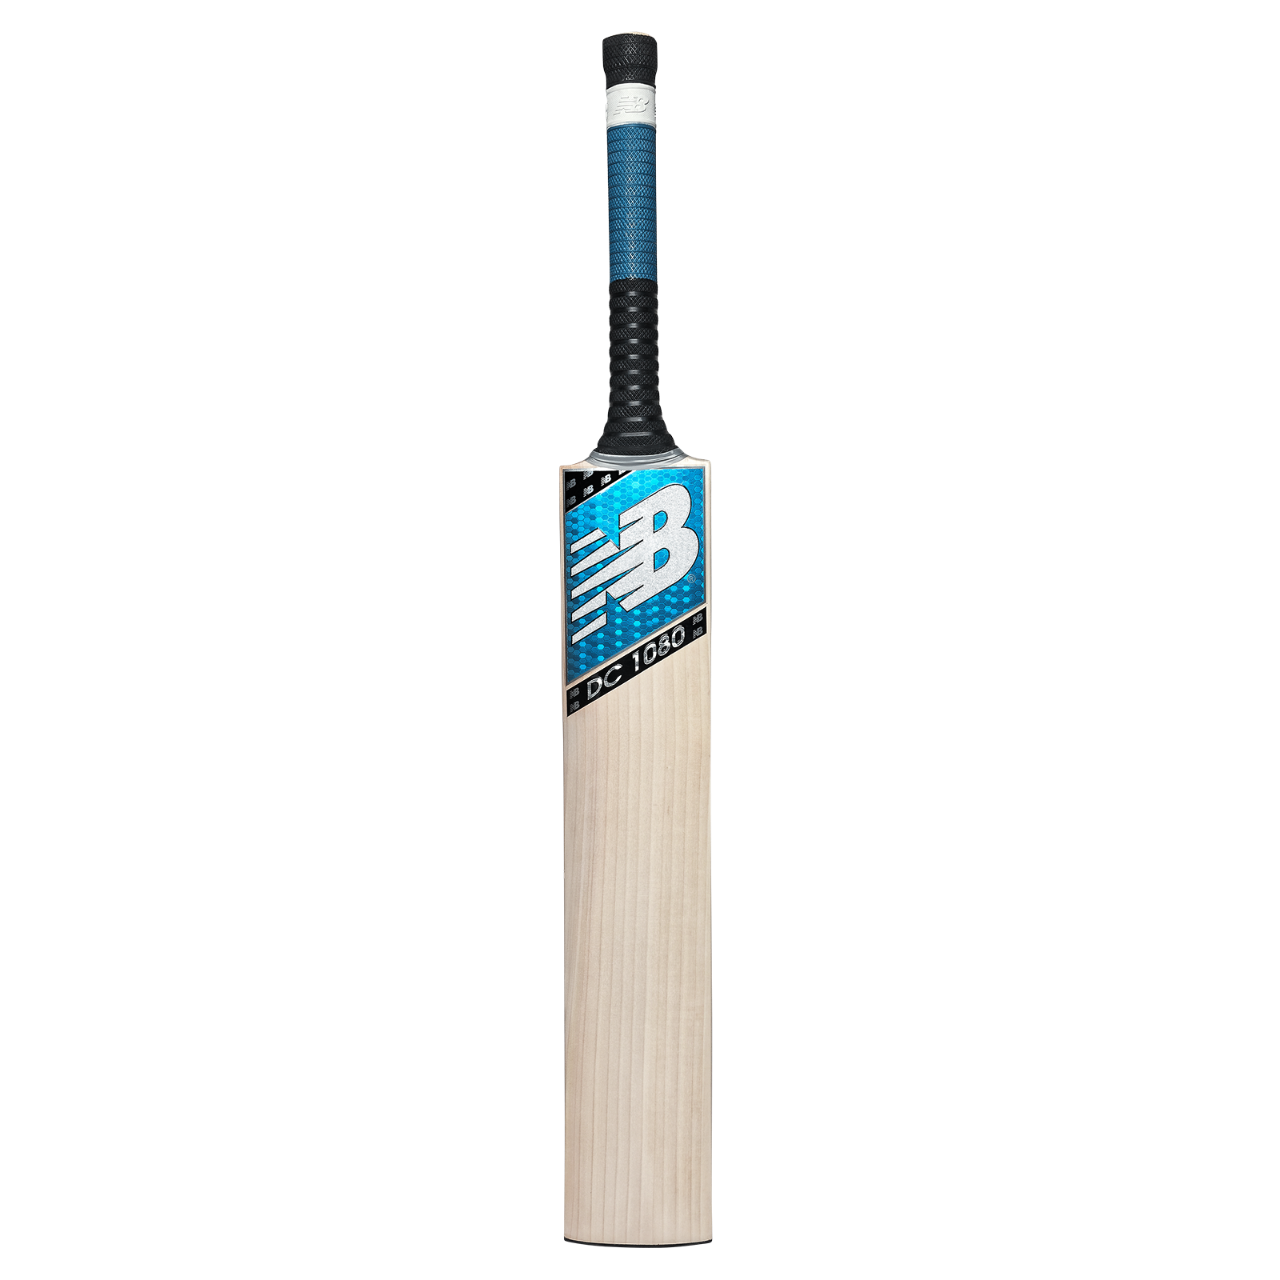 2020 New Balance DC 1080 Cricket Bat